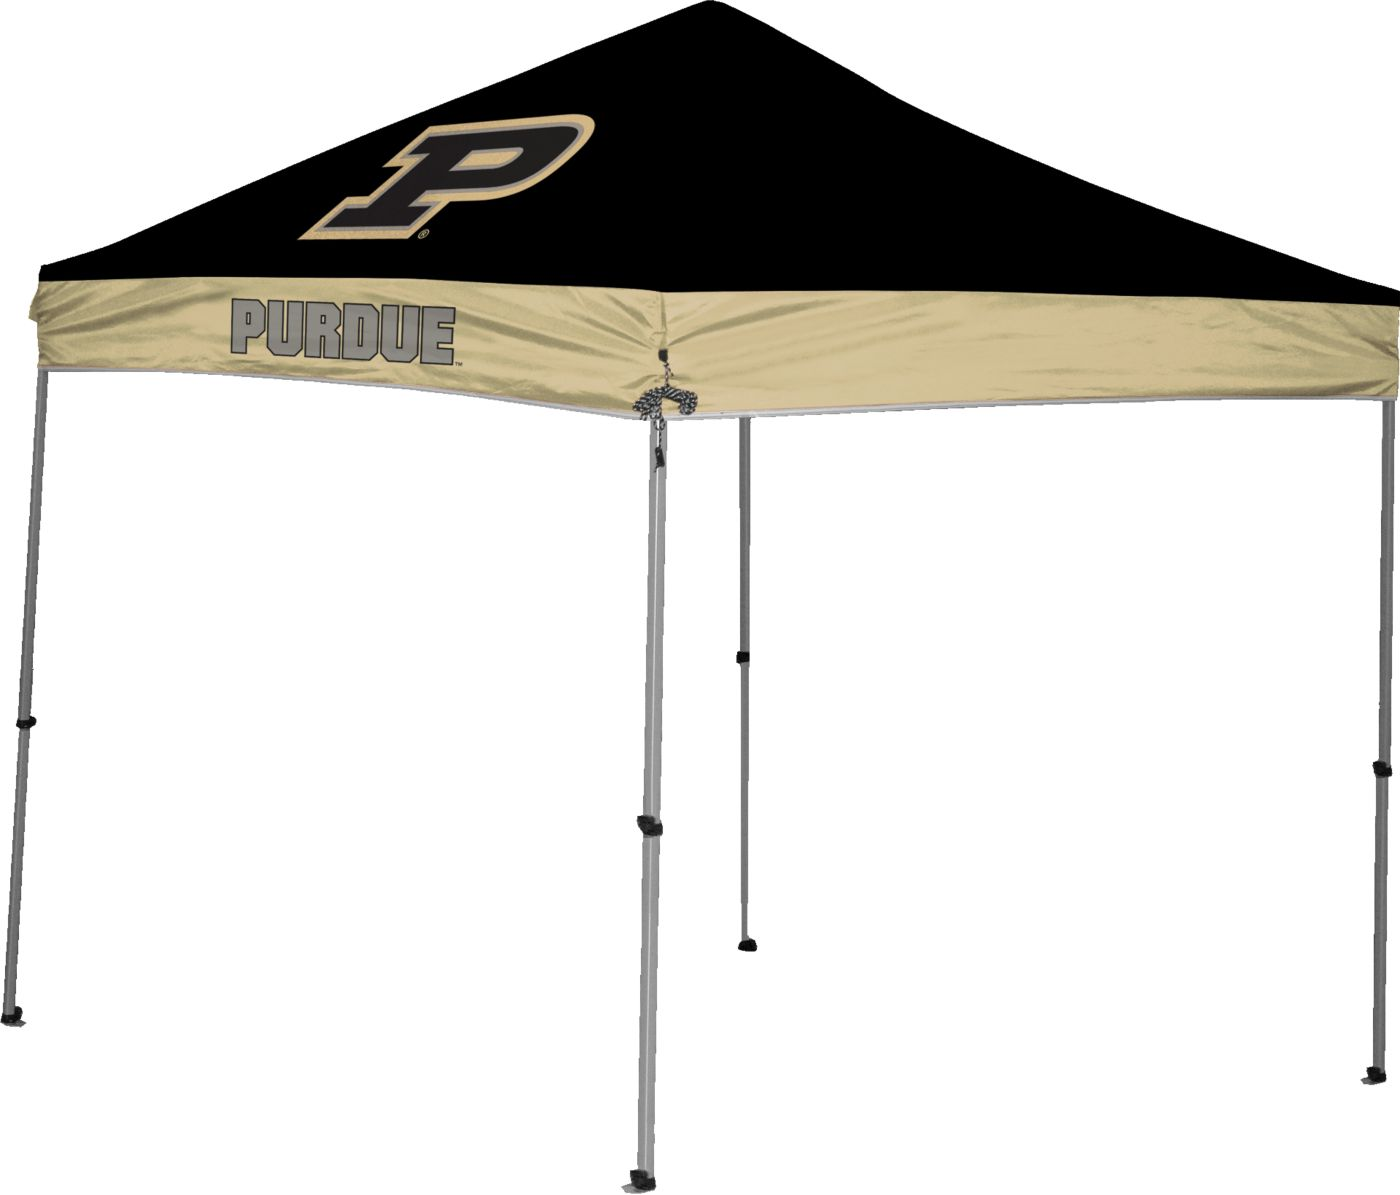 Rawlings Purdue Boilermakers 9' x 9' Sideline Canopy Tent